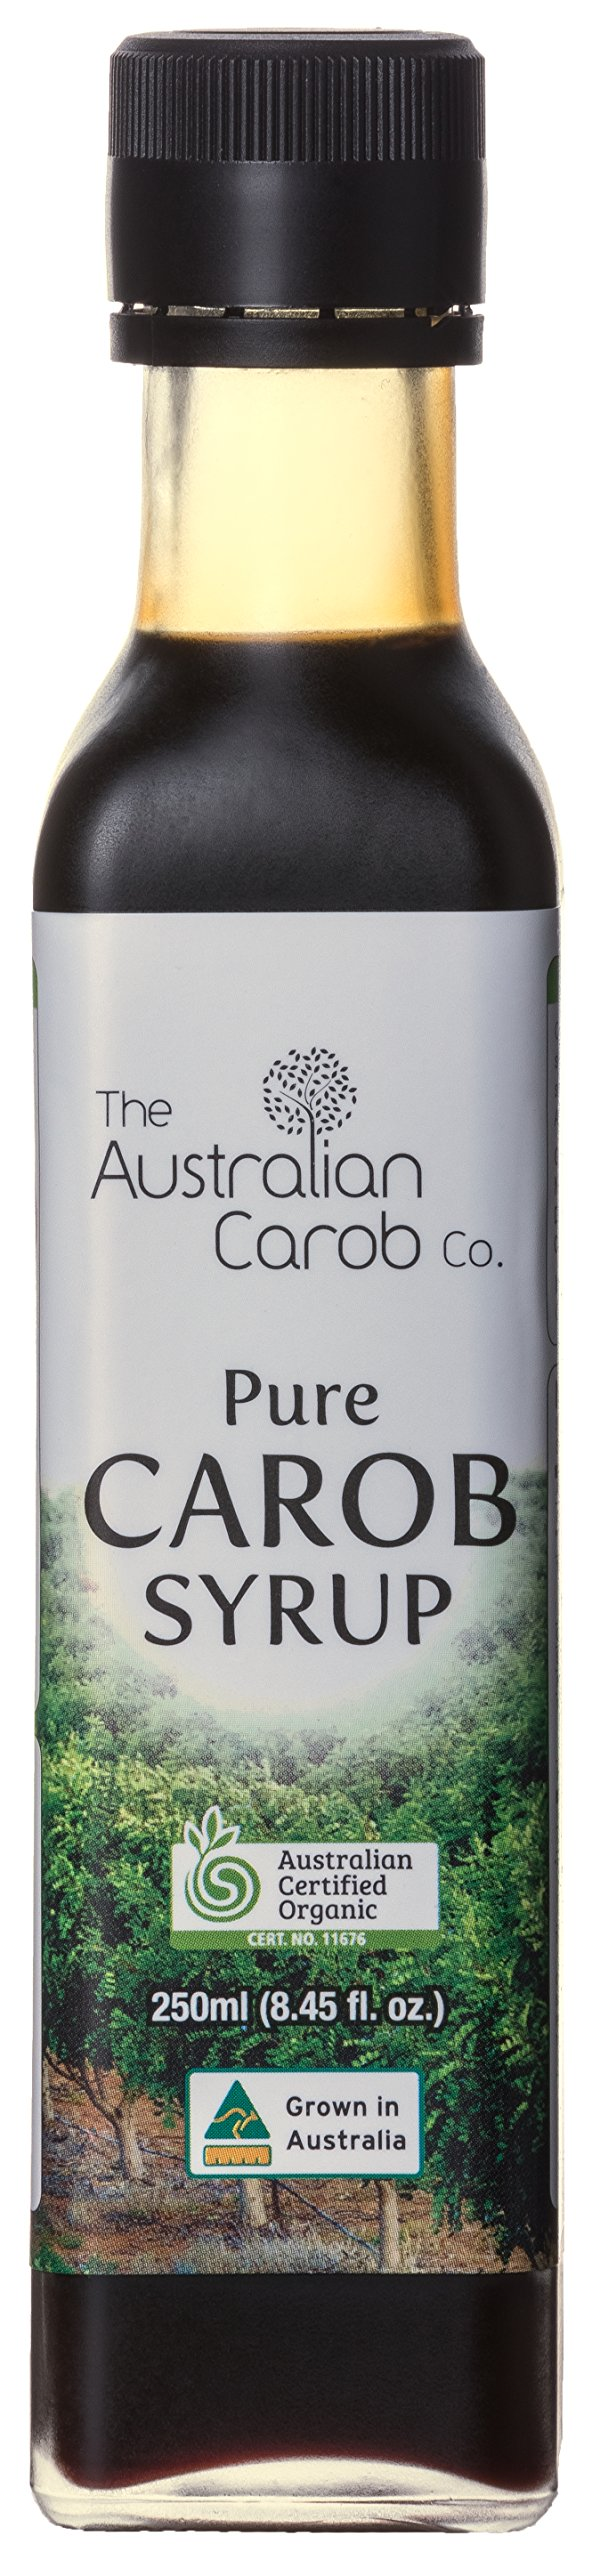 ORGANIC AUSTRALIAN CAROB CO. PREMIUM CAROB SYRUP GLASS BOTTLE, SUPERFOOD, 8.45fl.oz., NON-GMO, WORLD'S #1 BEST TASTING, PURE CAROB SYRUP (no added flavors, sugars) VEGAN, PALEO, NEW GENERATION CAROB